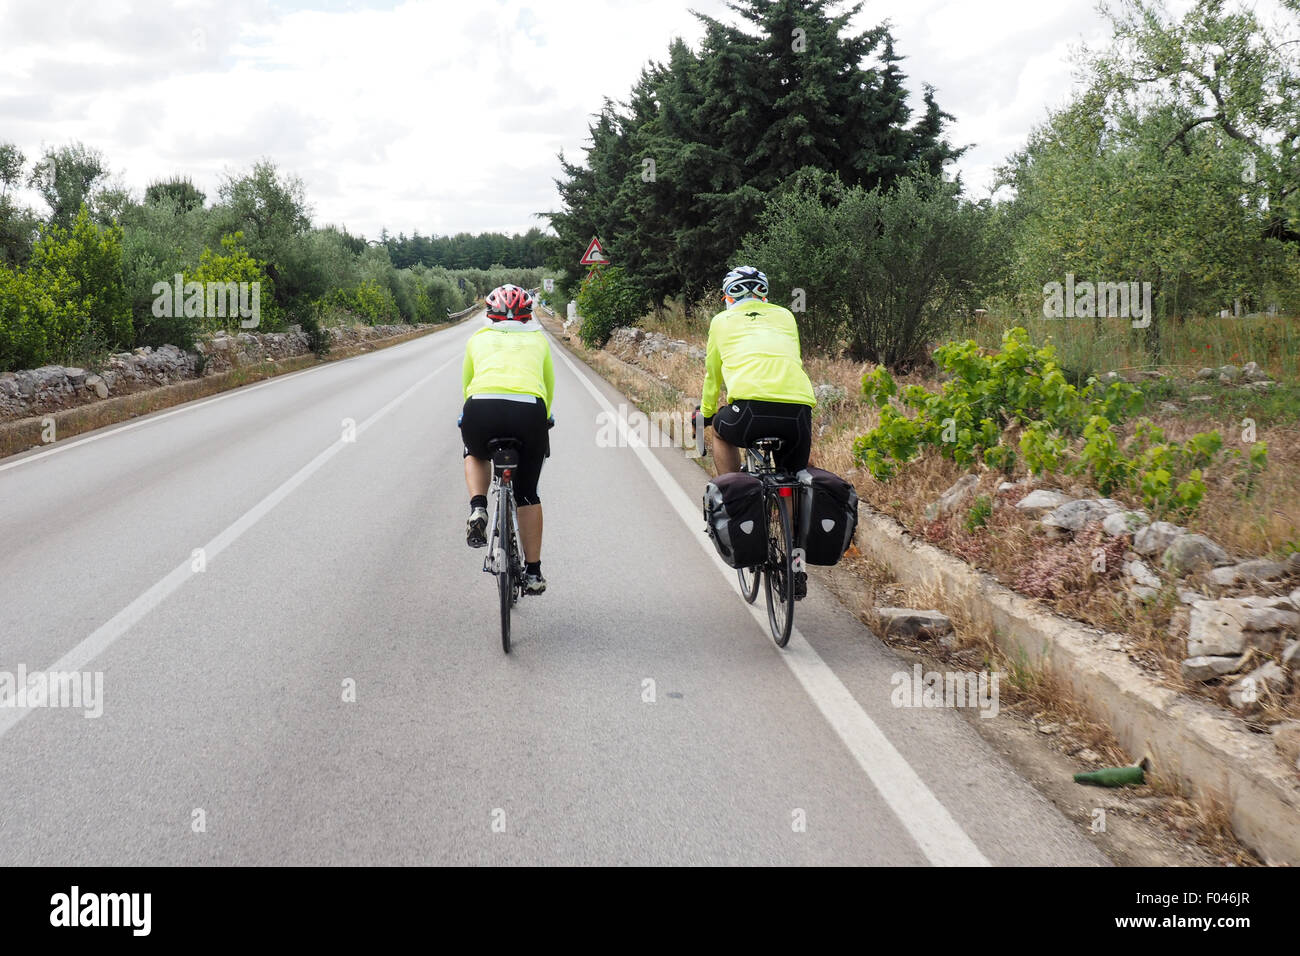 Two touring cyclists riding their bicycles on a country road Stock Photo